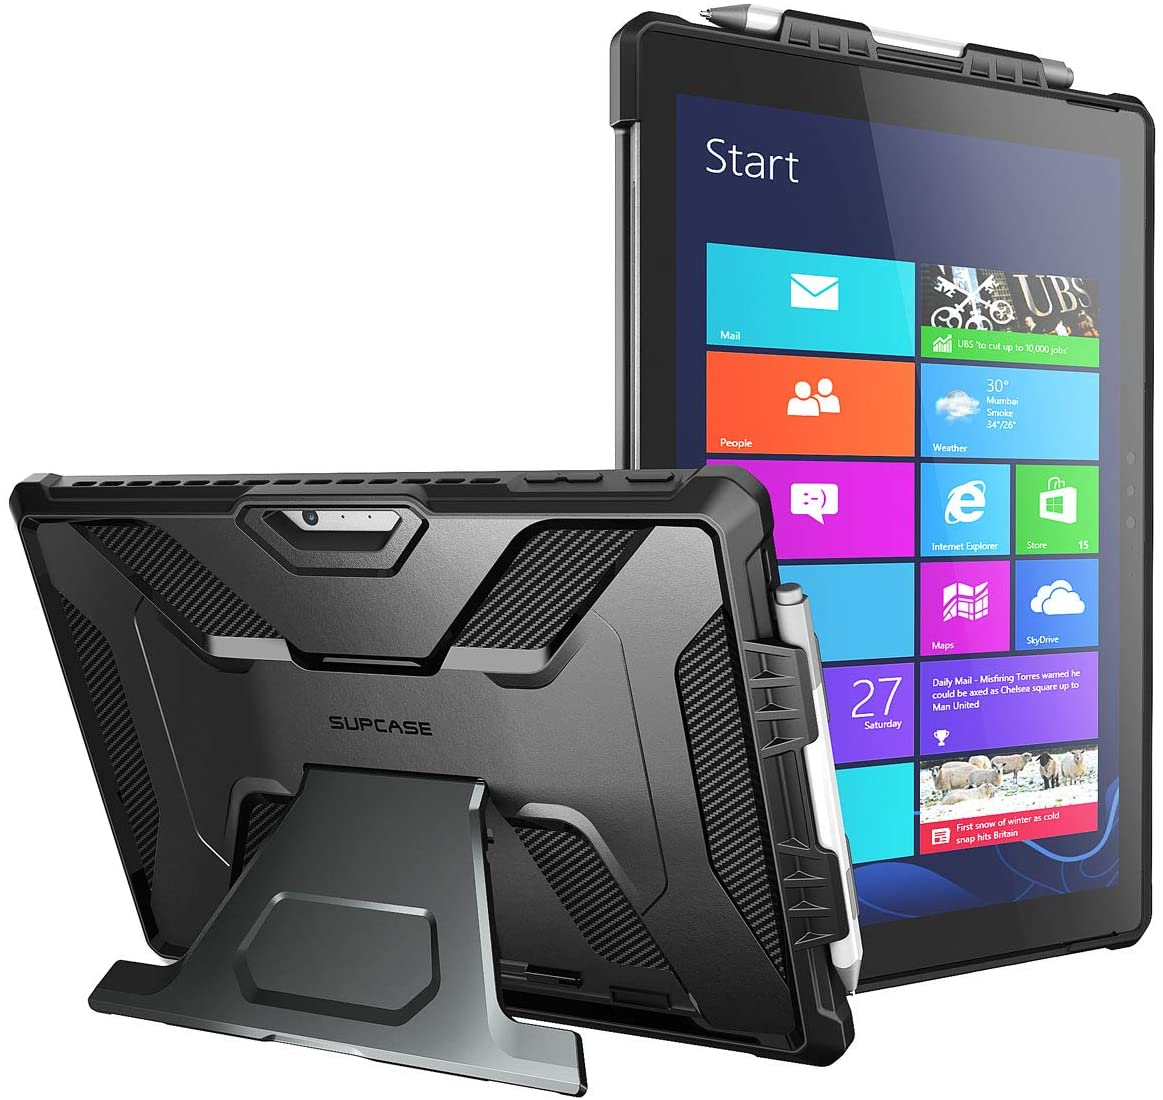 SUPCASE [UB PRO Series] Full-Body Kickstand Rugged Protective Case for Surface Pro 7/Pro 6 Case Microsoft Surface Pro 7/Pro 6/Pro 5/Pro 4/Pro LTE (Black)